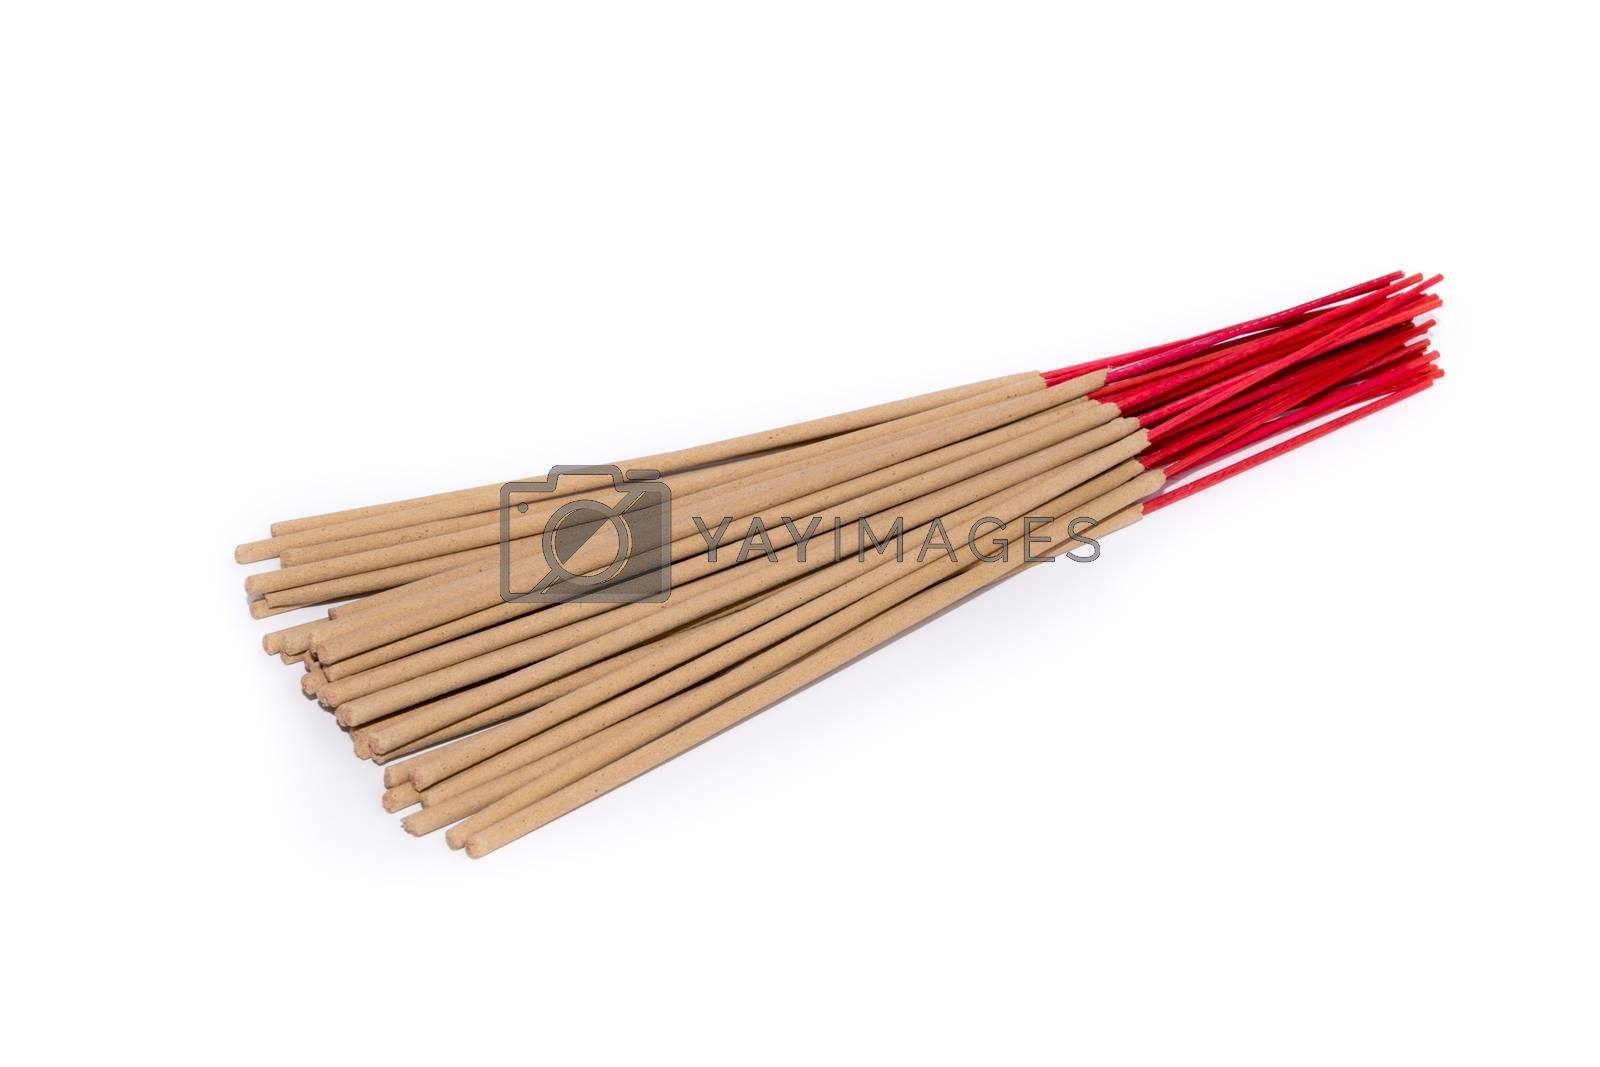 a gum, spice, or other substance that is burned for the sweet smell it produces. Instead, they burn incense and other sweet odors and light candles.